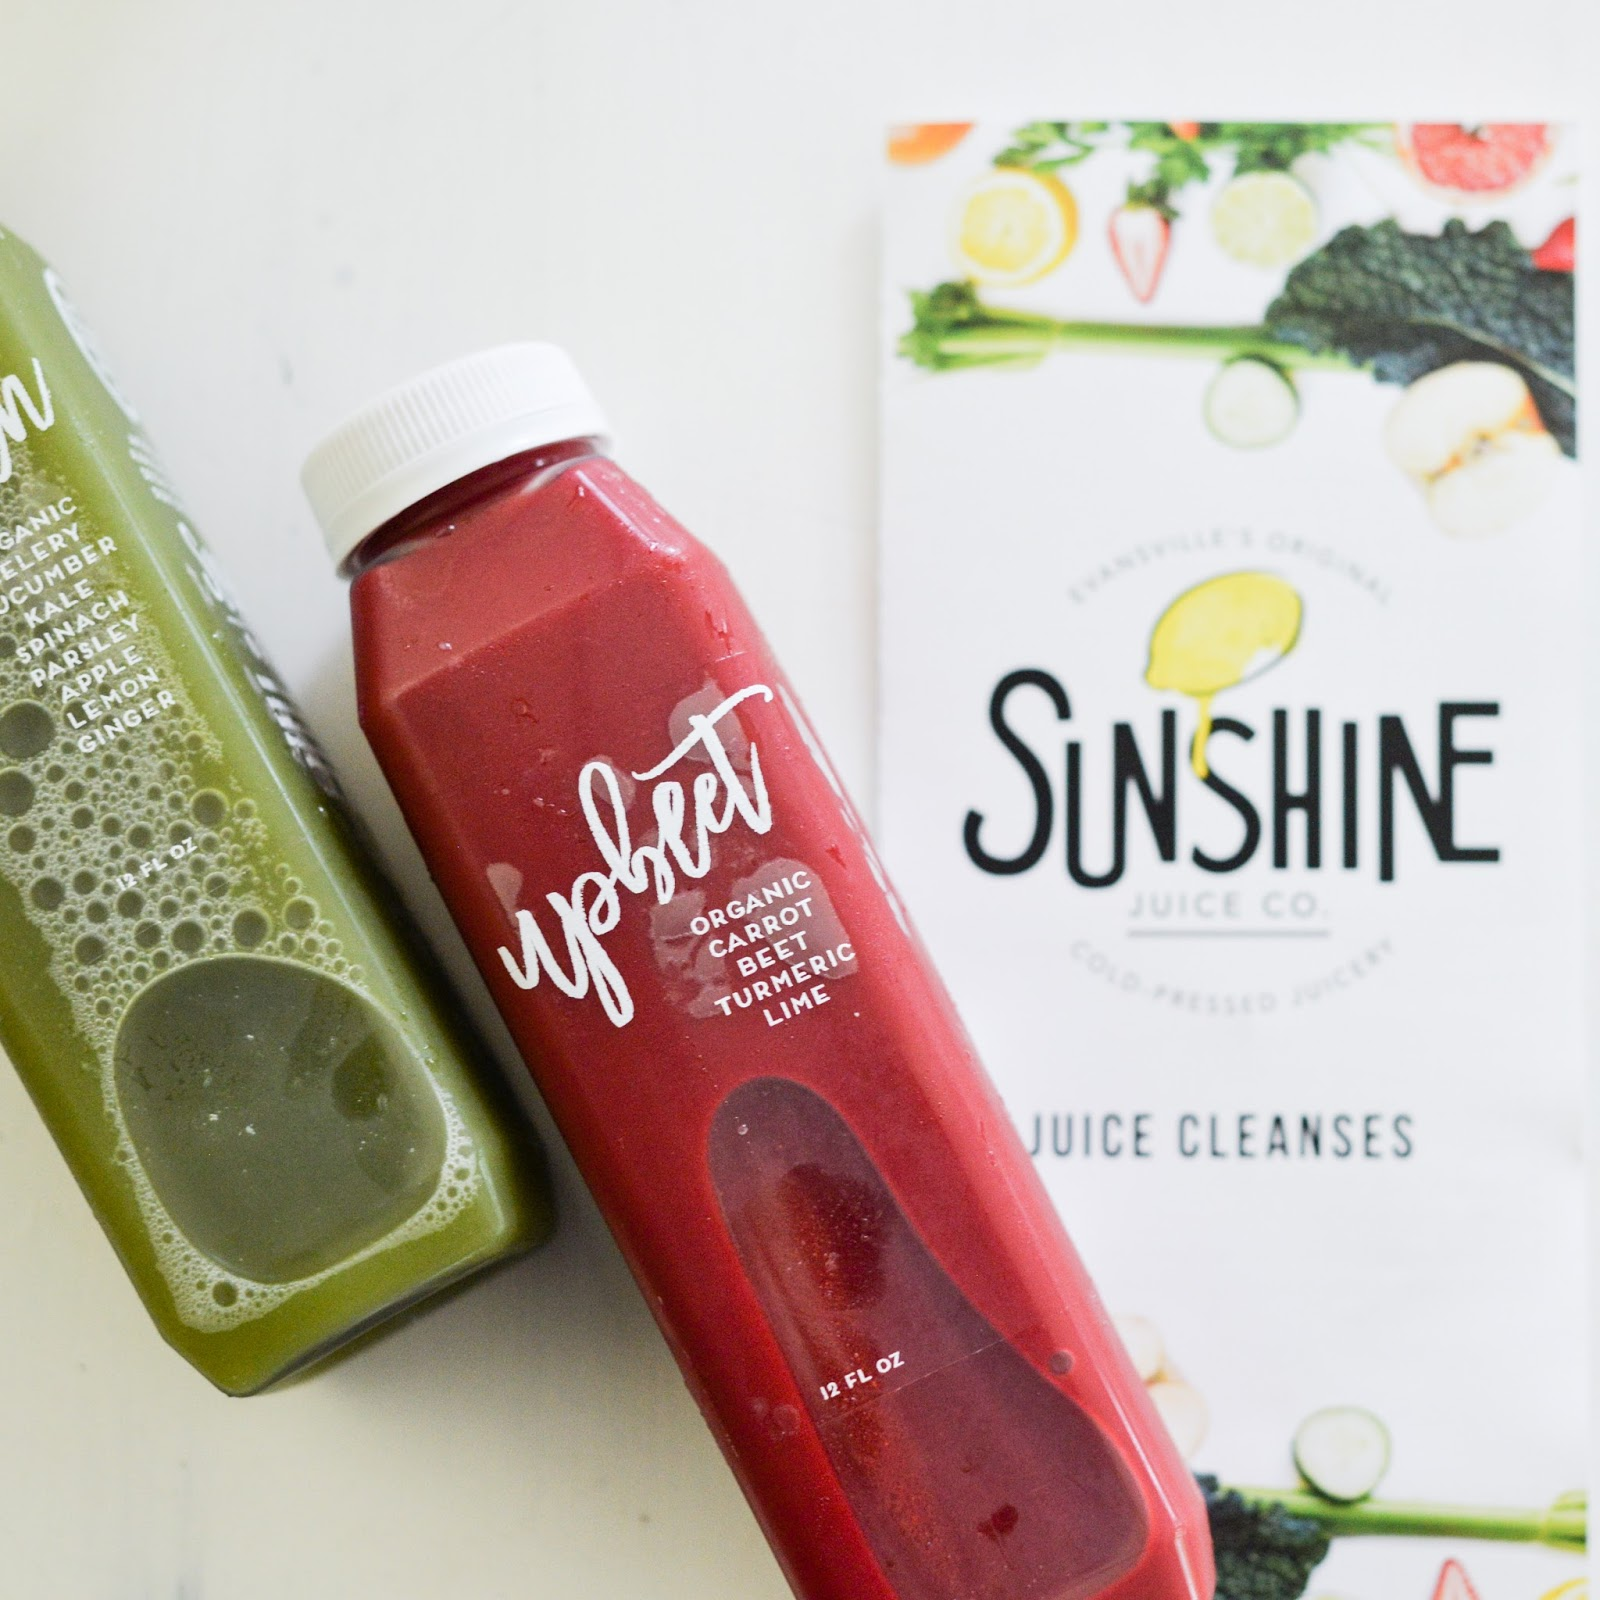 sunshine juice Cold-pressed sunshine juice in roppongi, tokyo offers the highest quality cold-pressed juice cold-pressed juice is a method of extracting juice from fruit and vegetables via a hydraulic press without introducing heat, allowing more healthy vitamins, minerals, and nutrients to remain in the finished product.